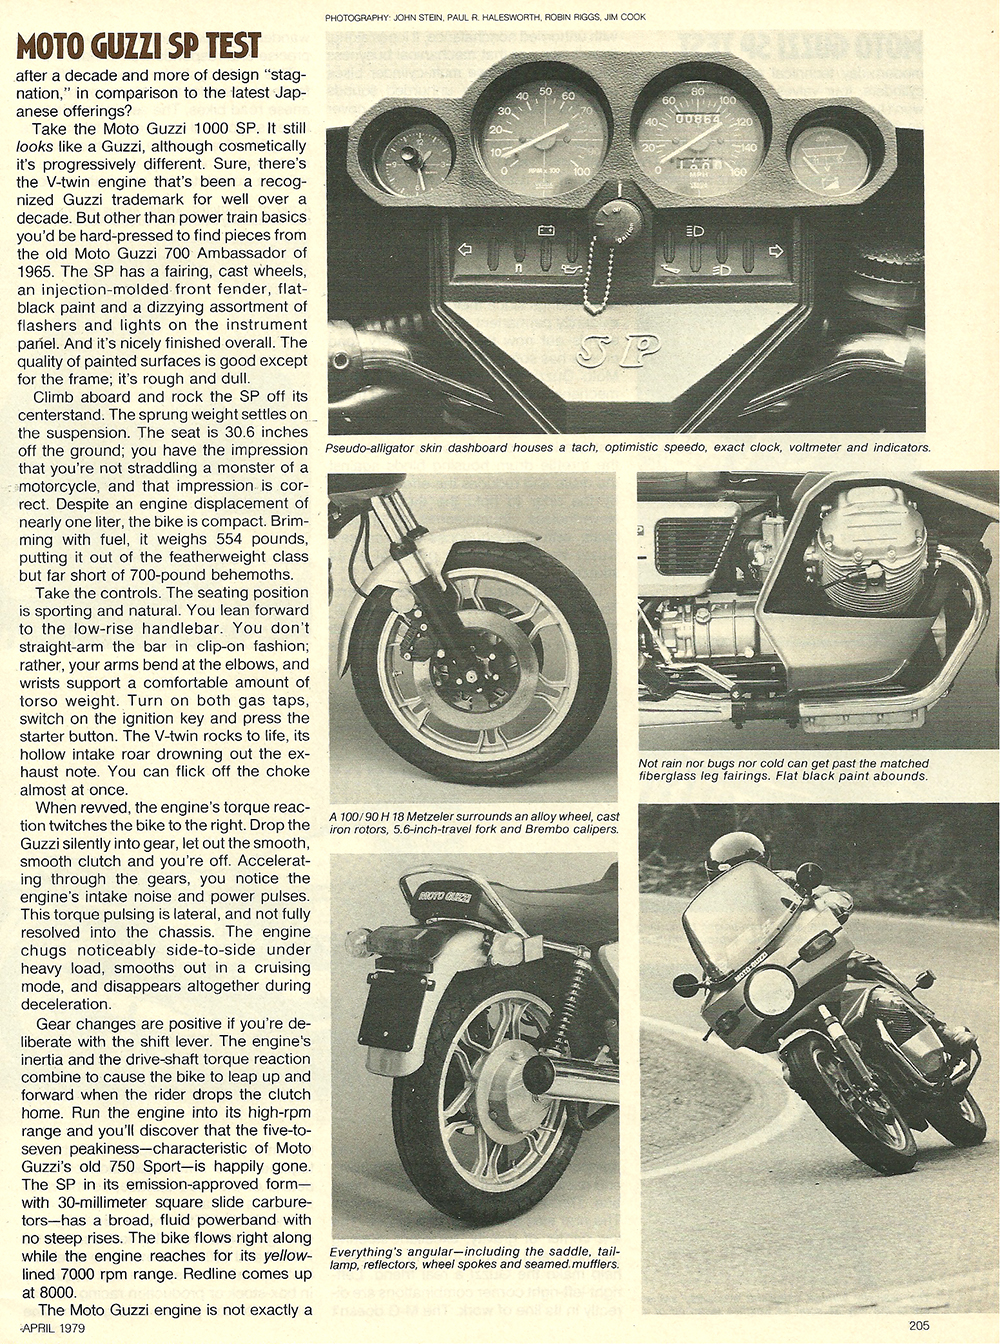 1979 Moto Guzzi 1000 SP road test 04.jpg